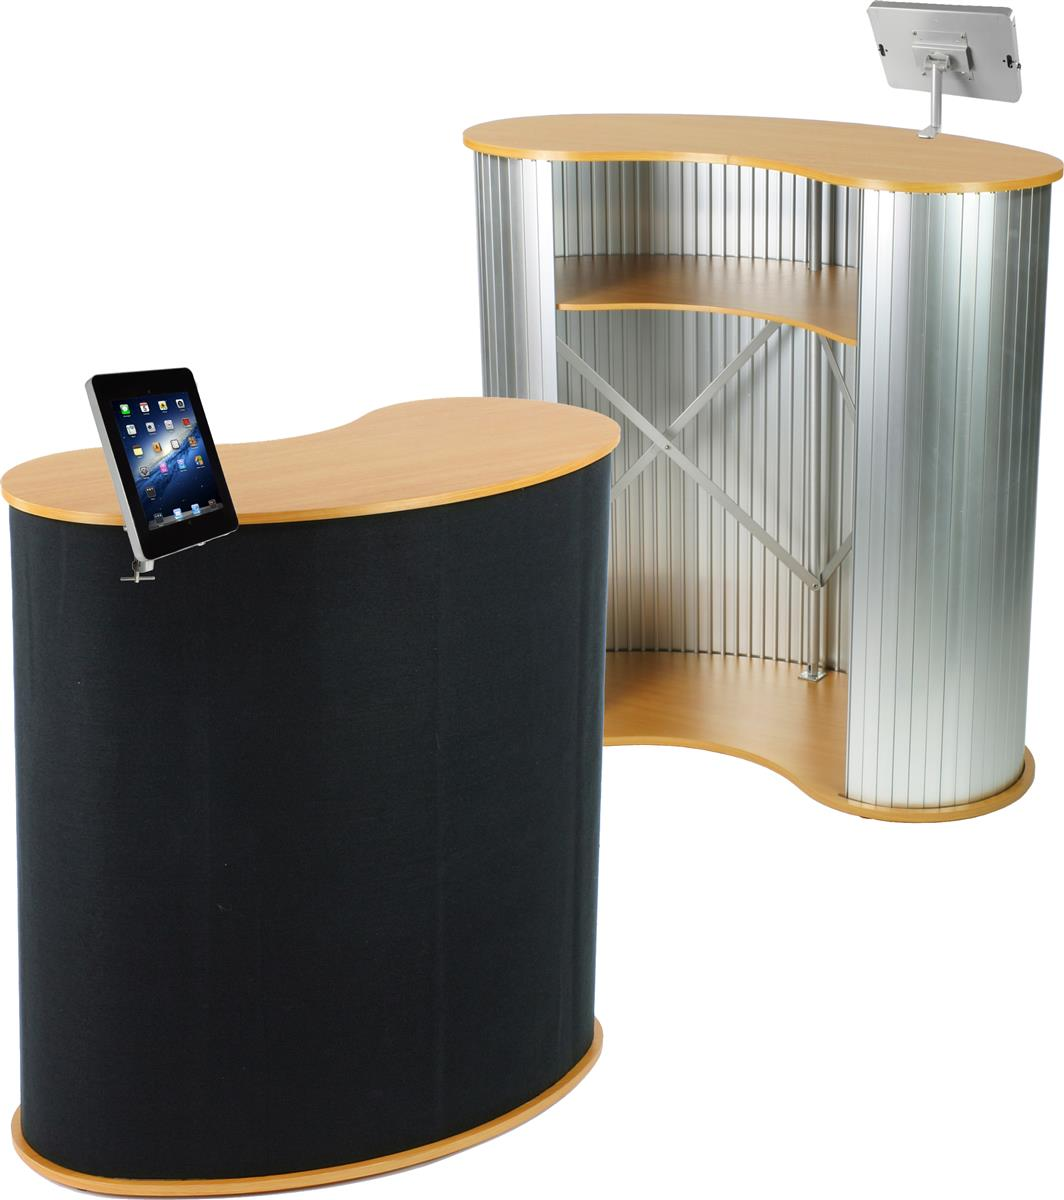 Trade Show Booth Kiosks : Trade show kiosk with tablet display presentation counter